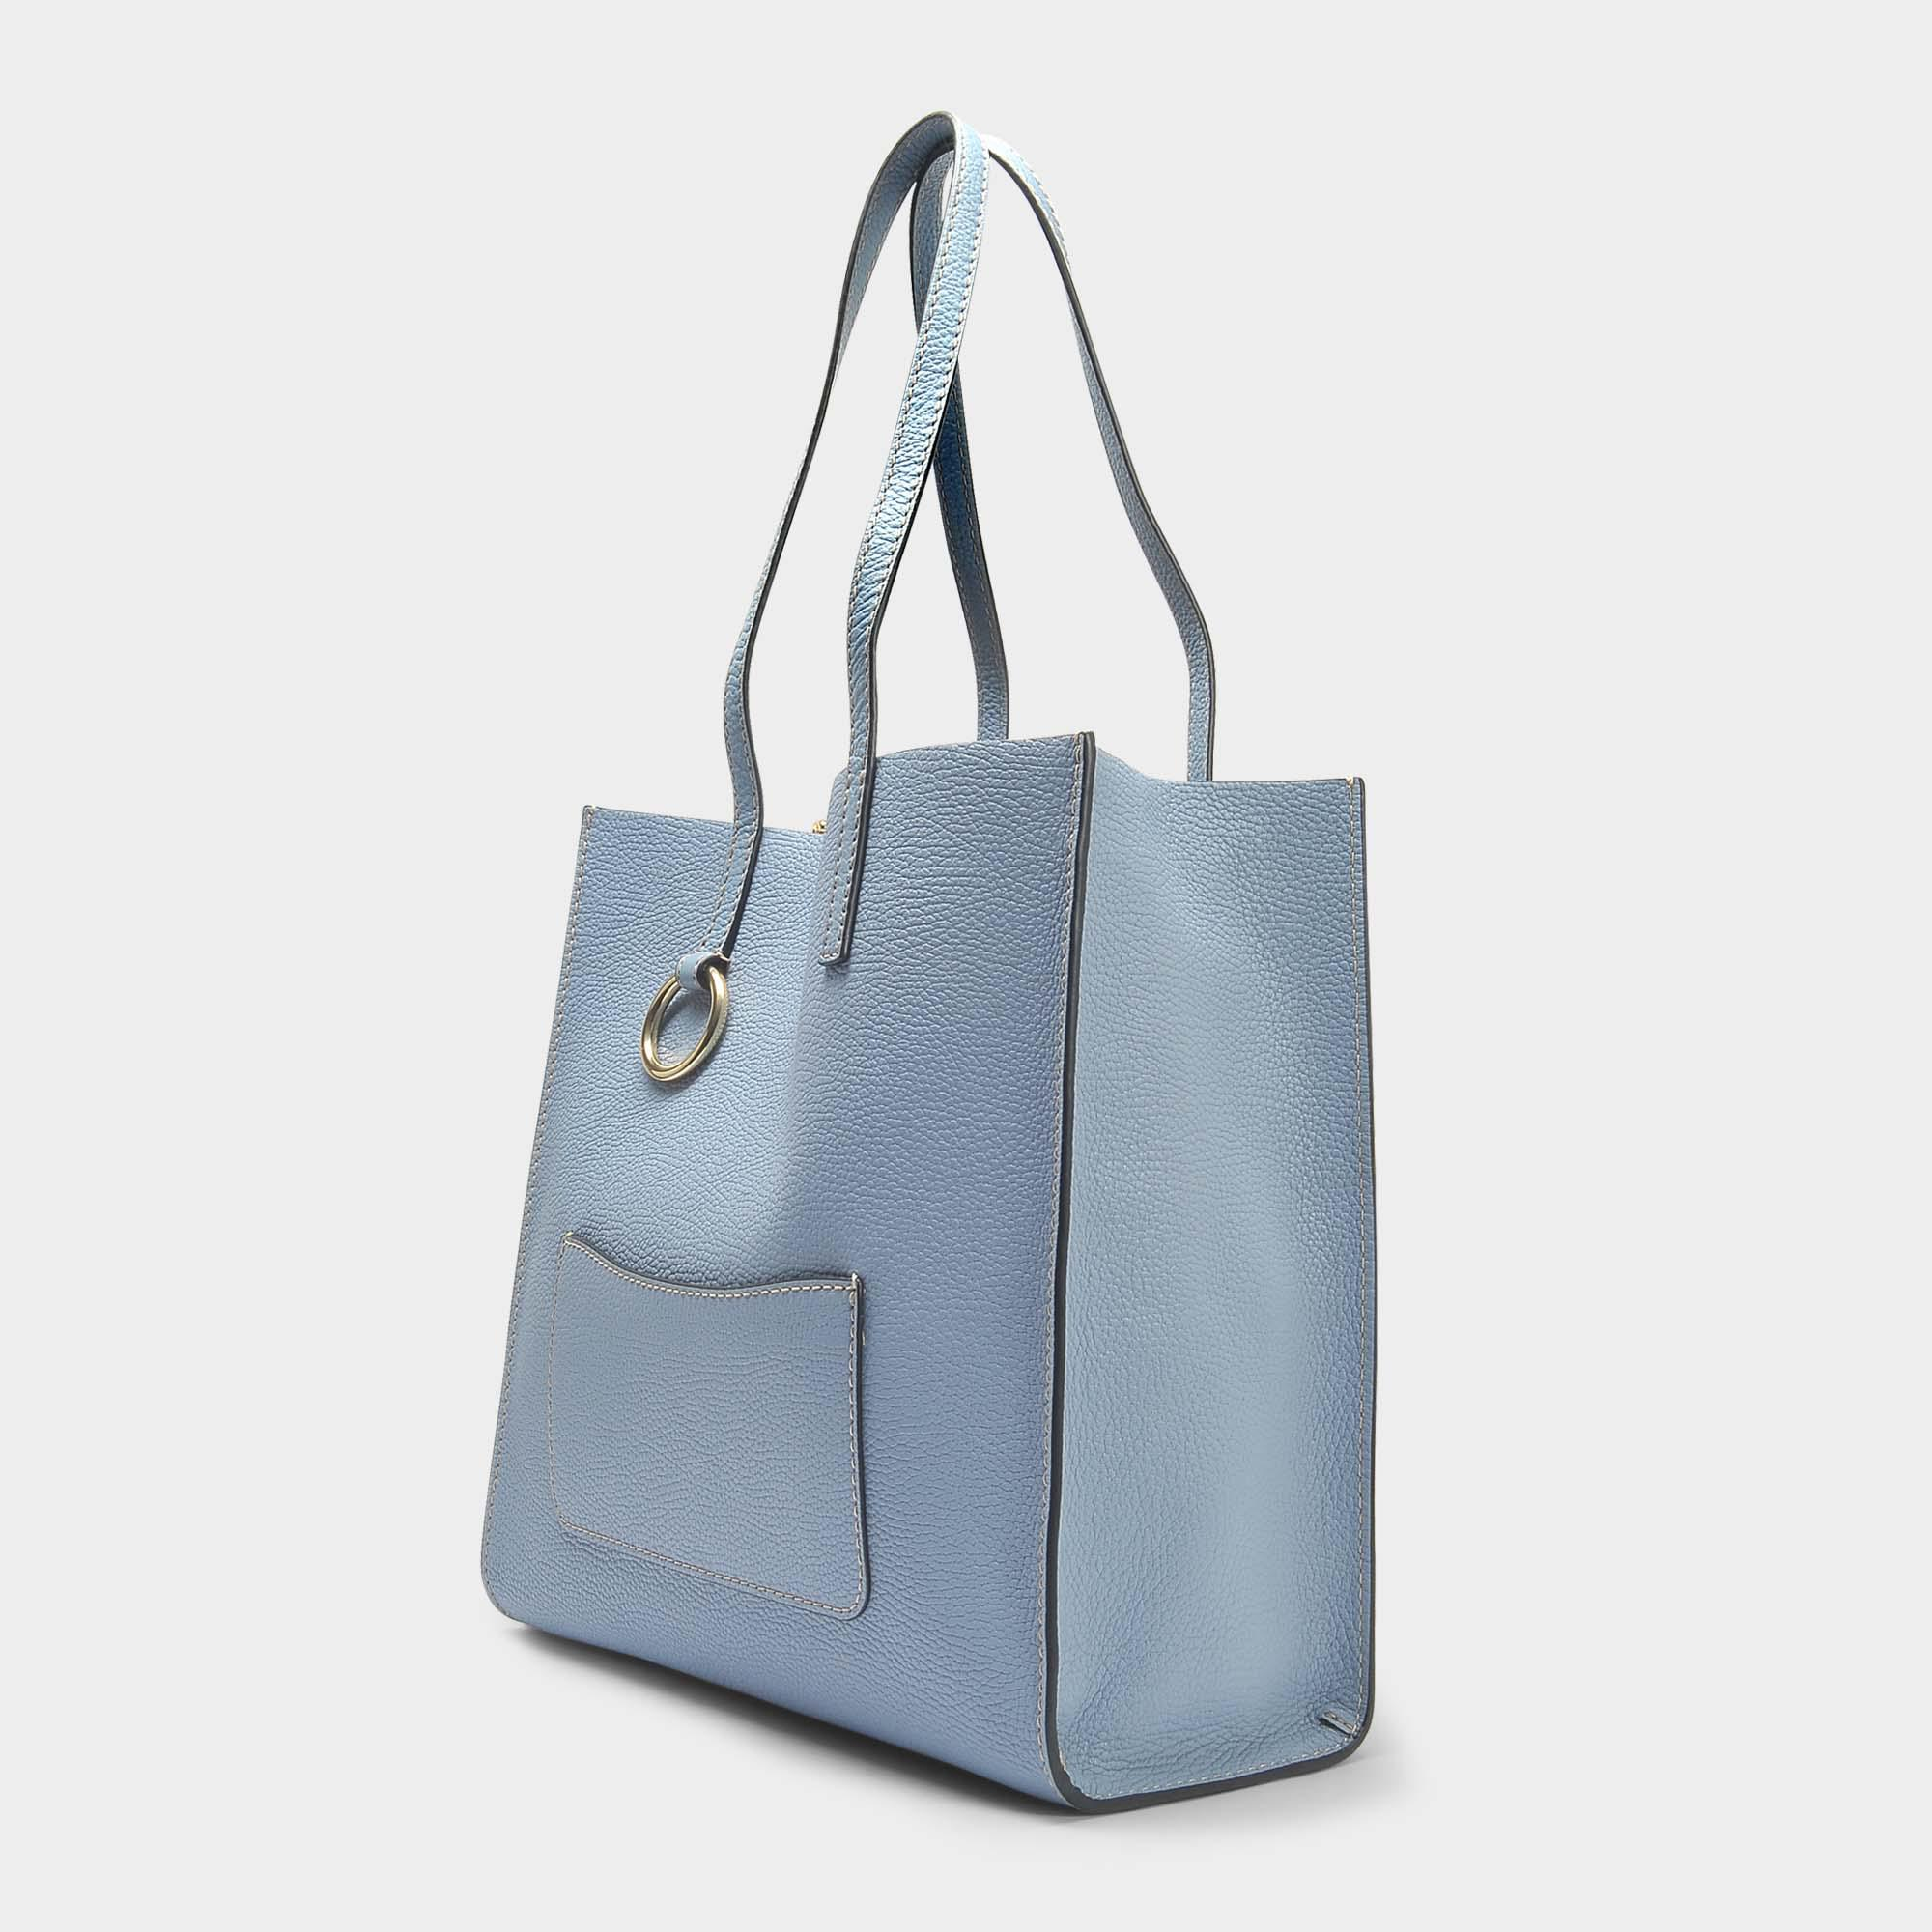 12030a97a7cc marc-jacobs--The-Bold-Grind-Tote-Bag-In-Light-Blue-Cow-Leather.jpeg